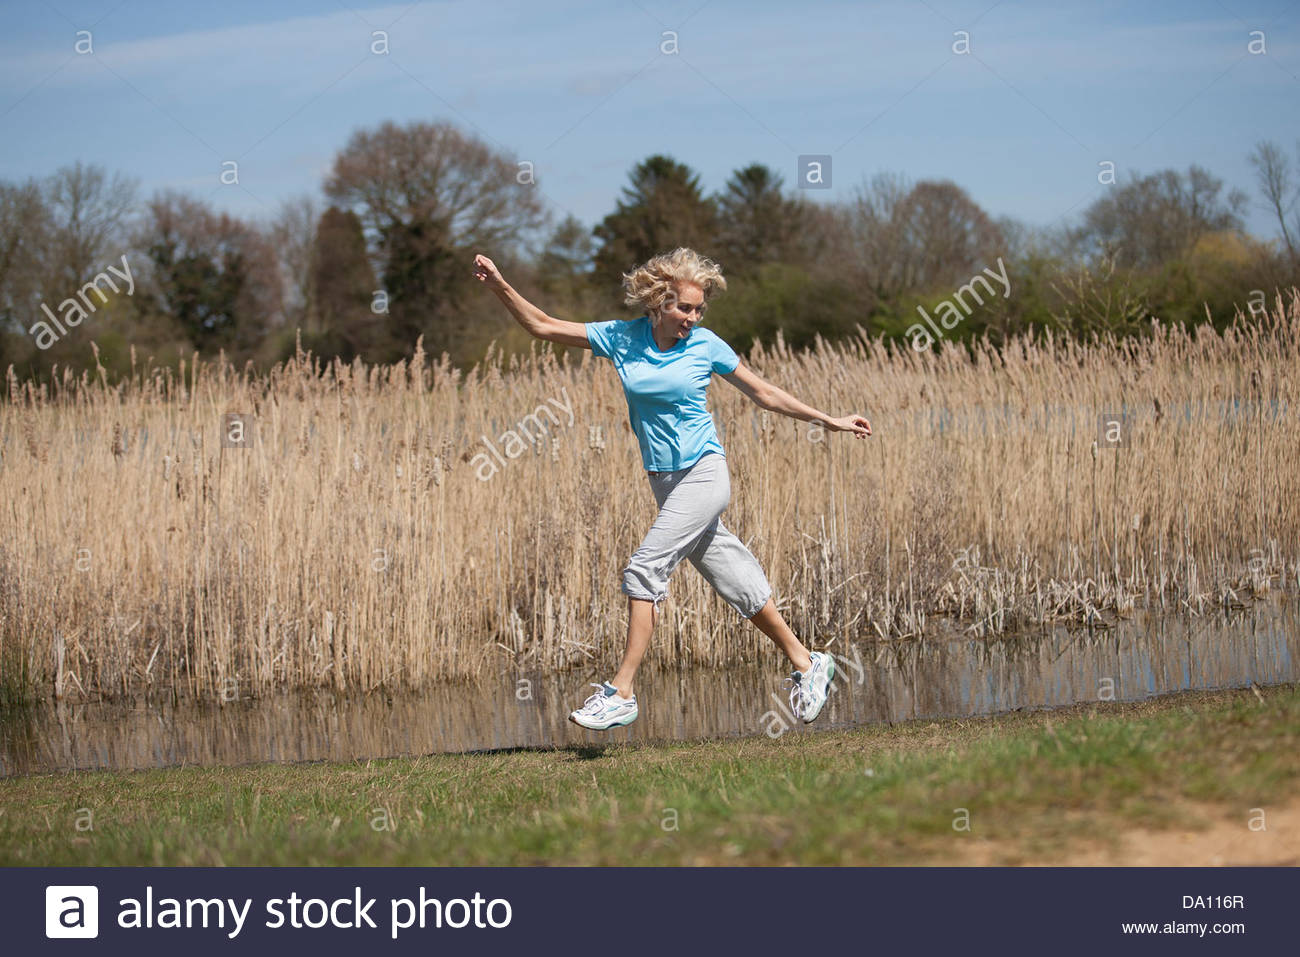 A mature woman running in the countryside, jumping with arms outstretched - Stock Image